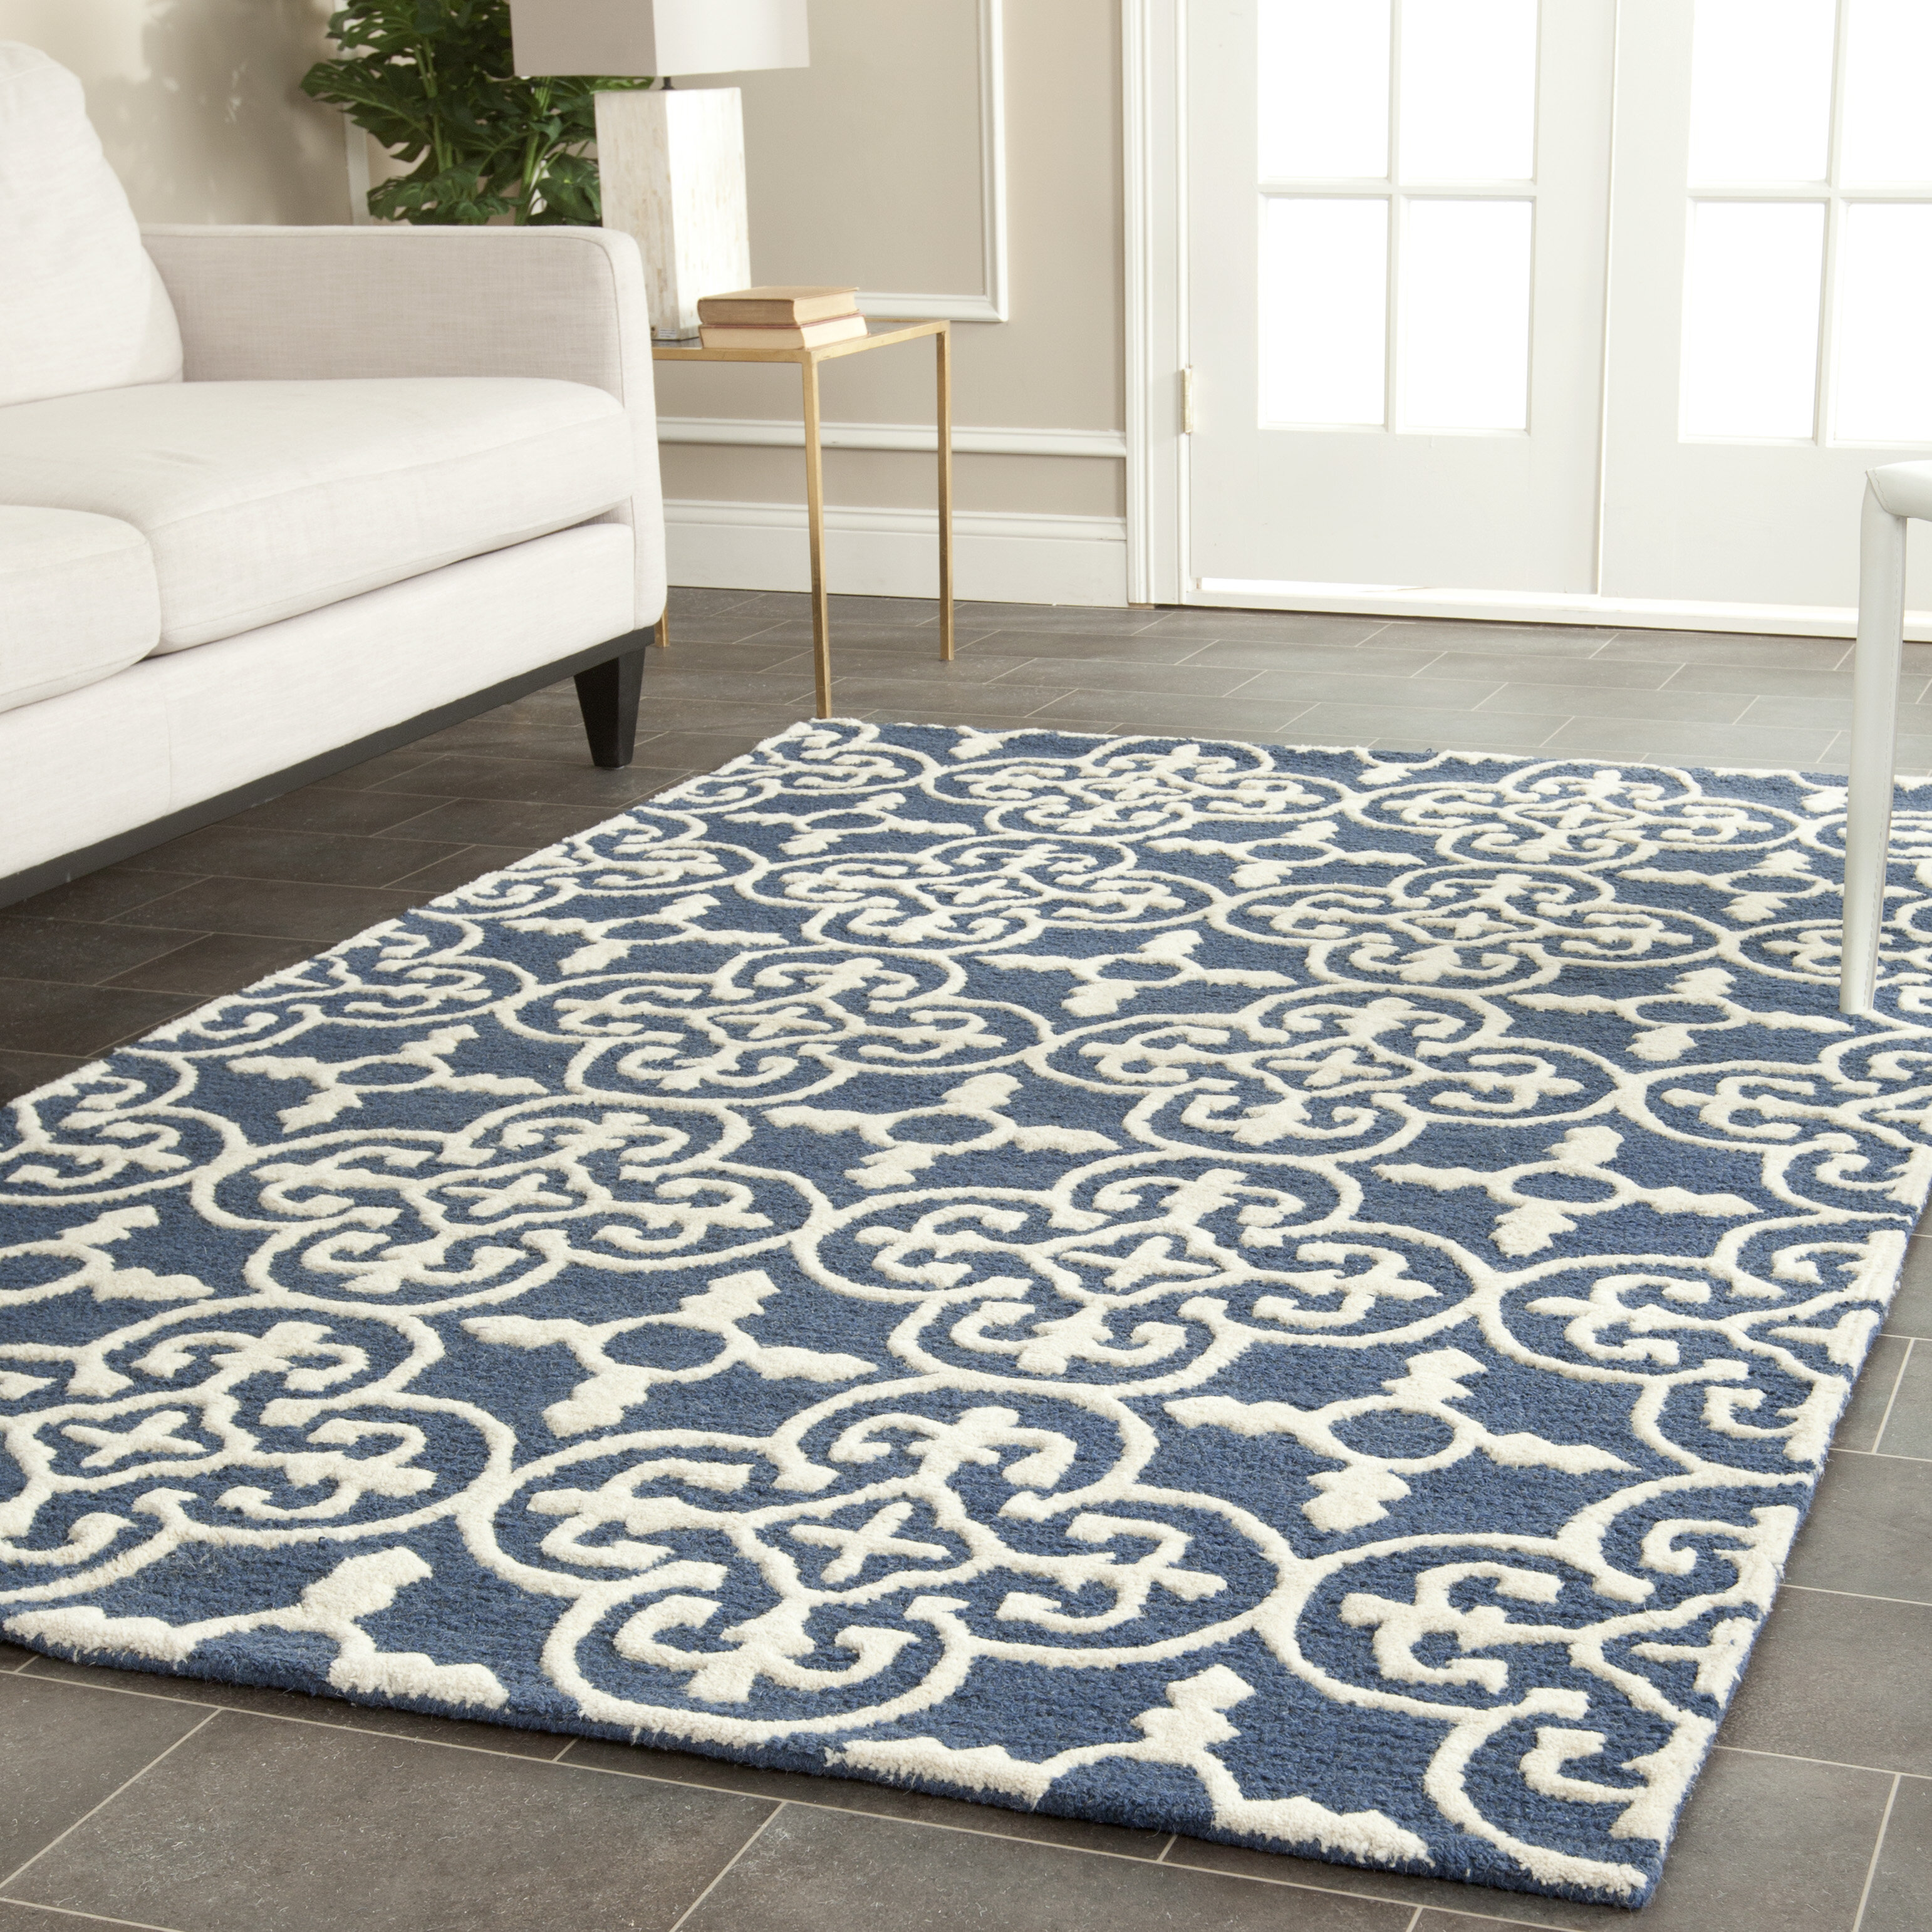 Byron Navy Blue Ivory Tufted Wool Area Rug & Reviews